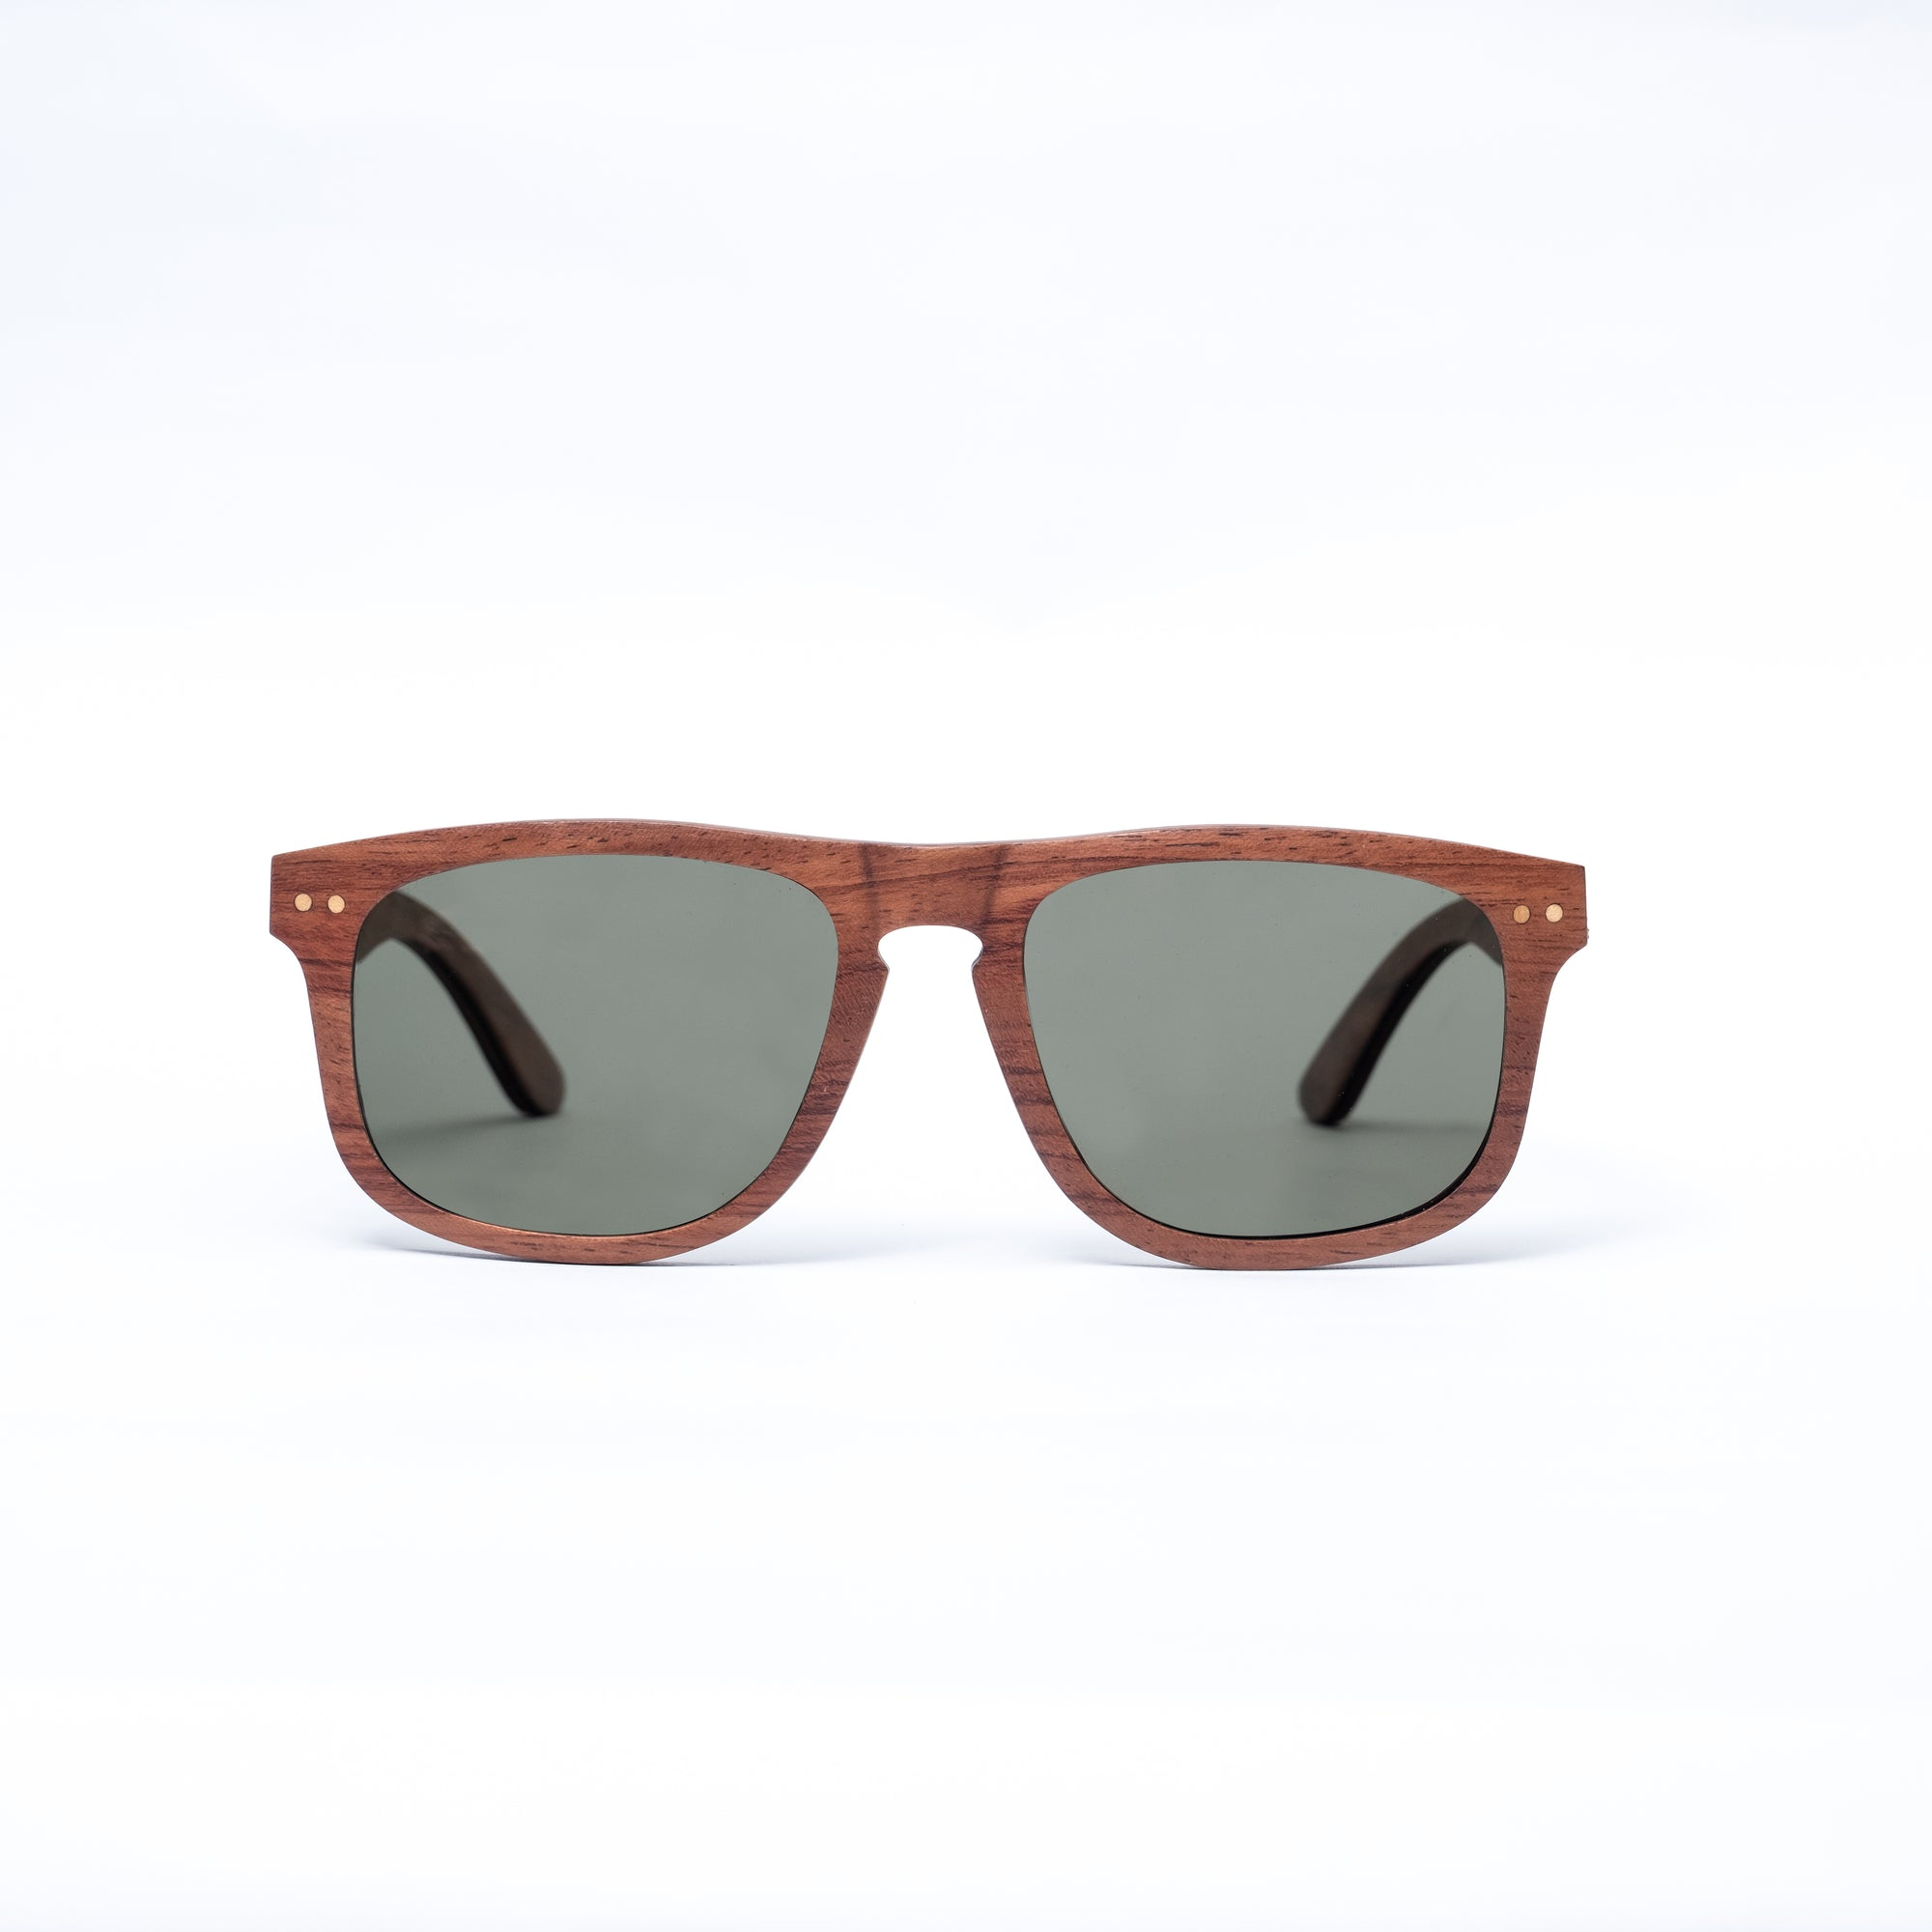 Black Cherry Wood Sunglasses - Oakfin